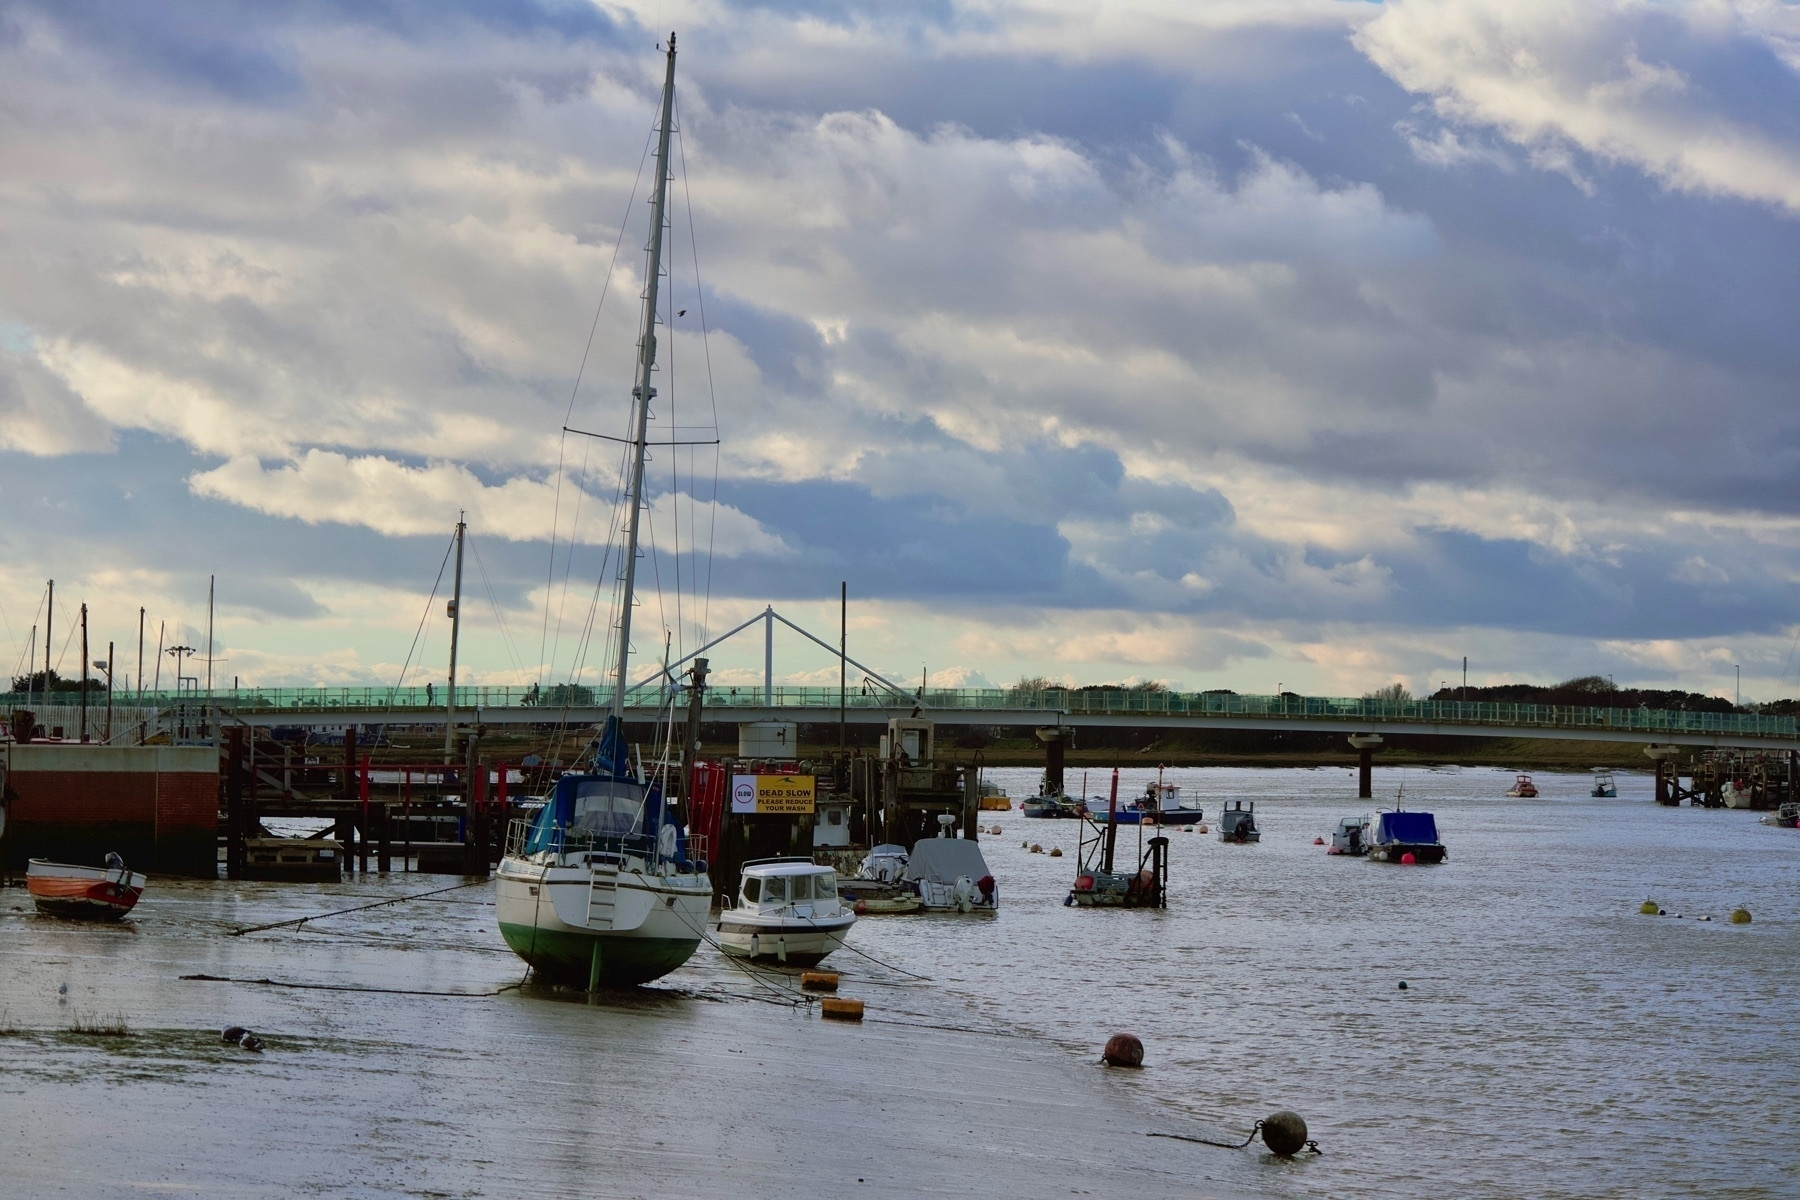 The Adur, at low tide, looking towards the Adur Ferry Bridge.